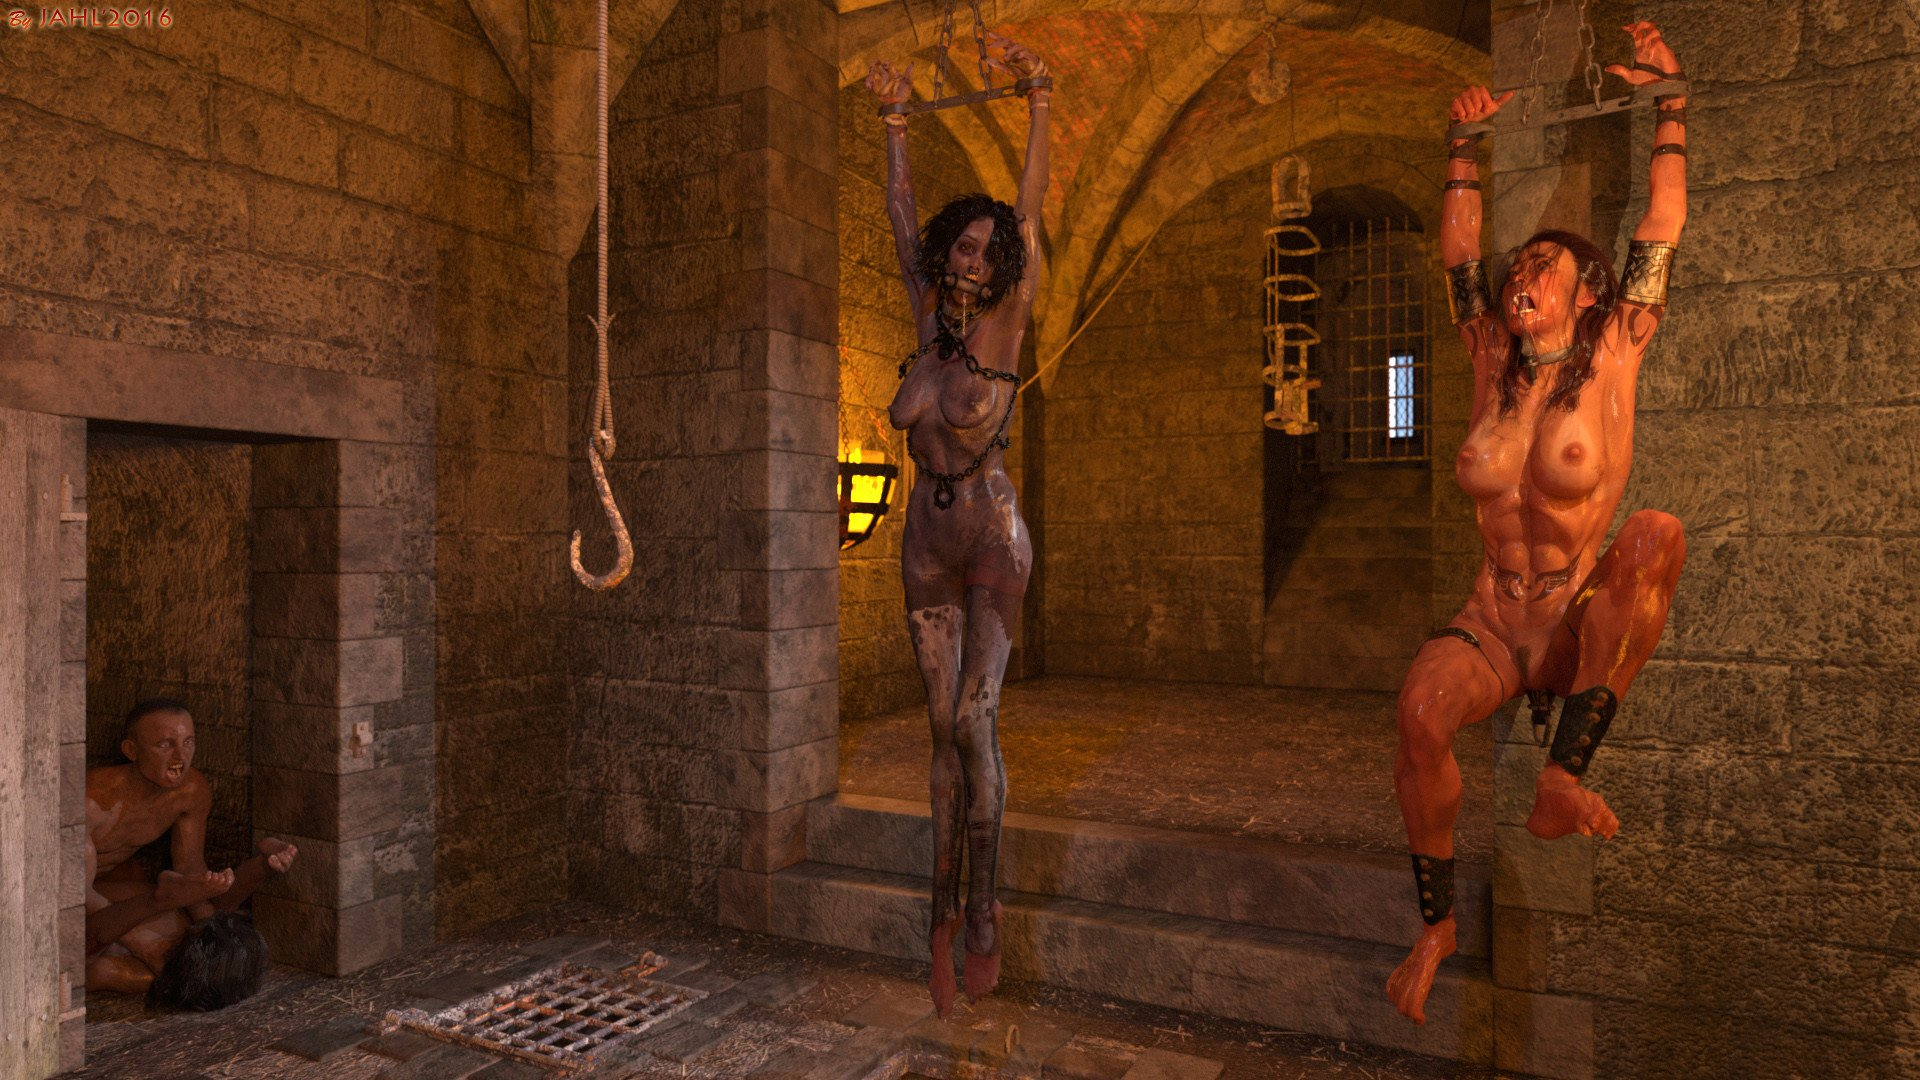 naked-girl-medieval-torture-chamber-women-white